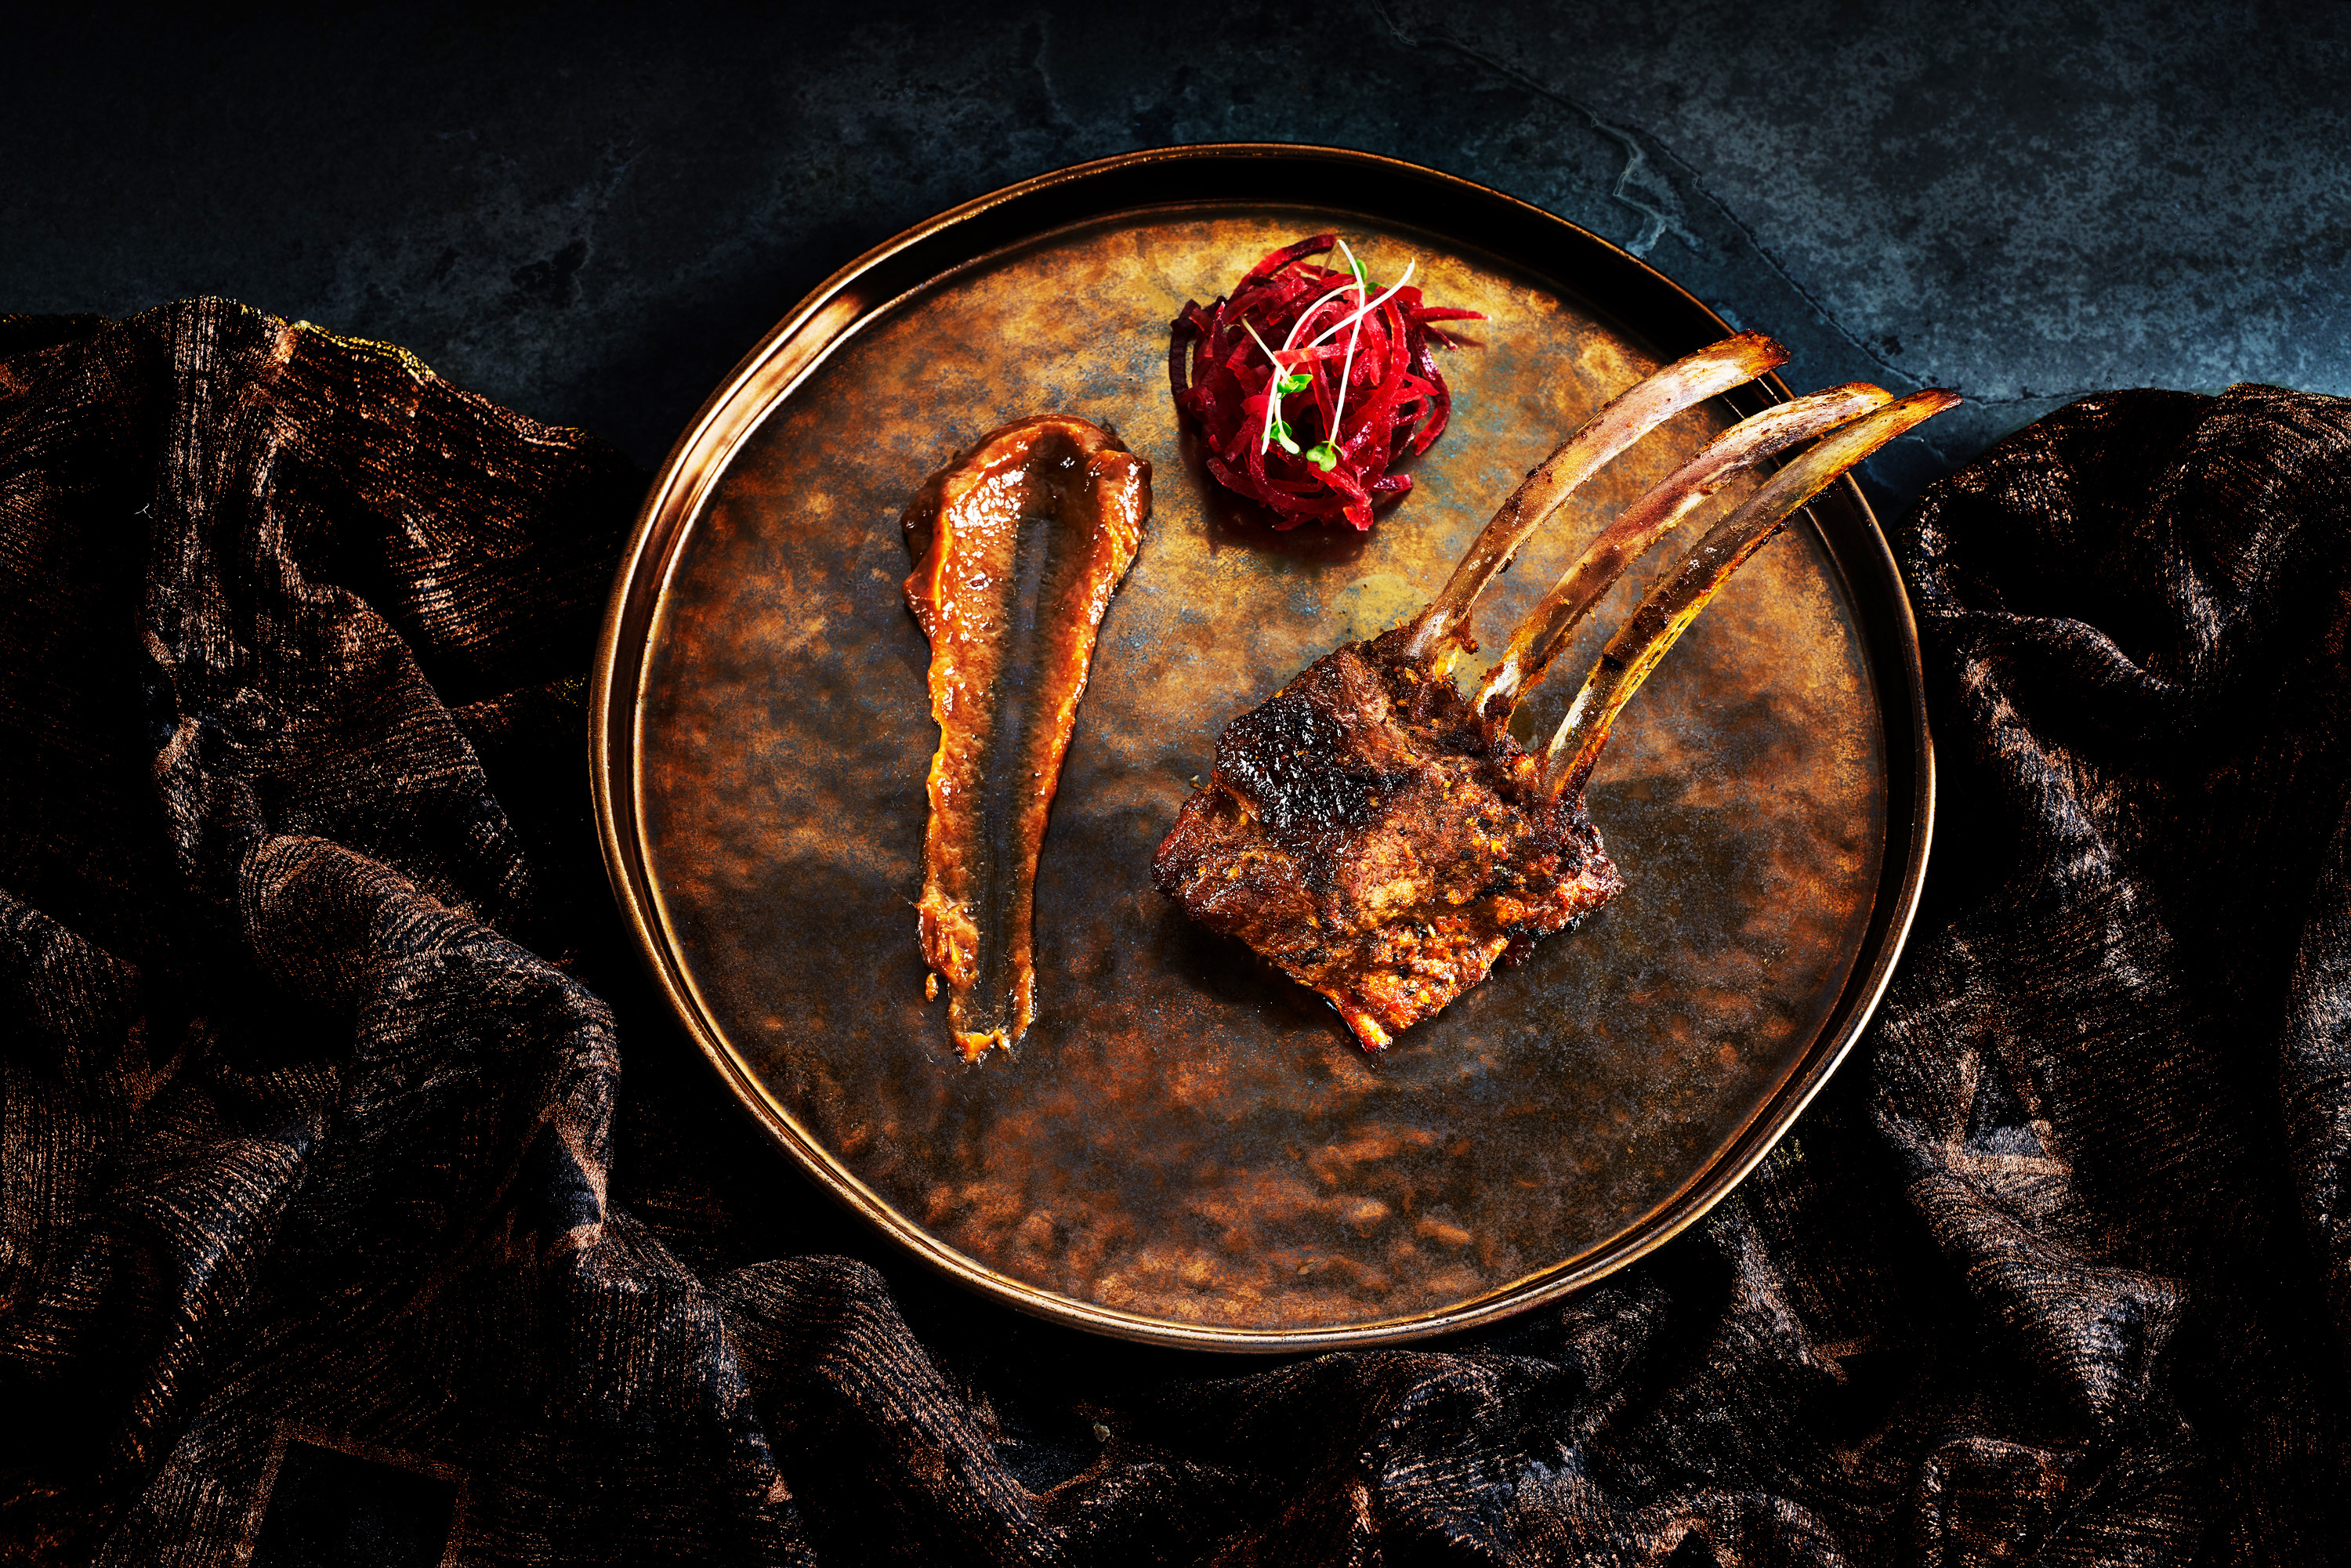 Photograph of rack of lamb by London food photographer, Michael Michaels